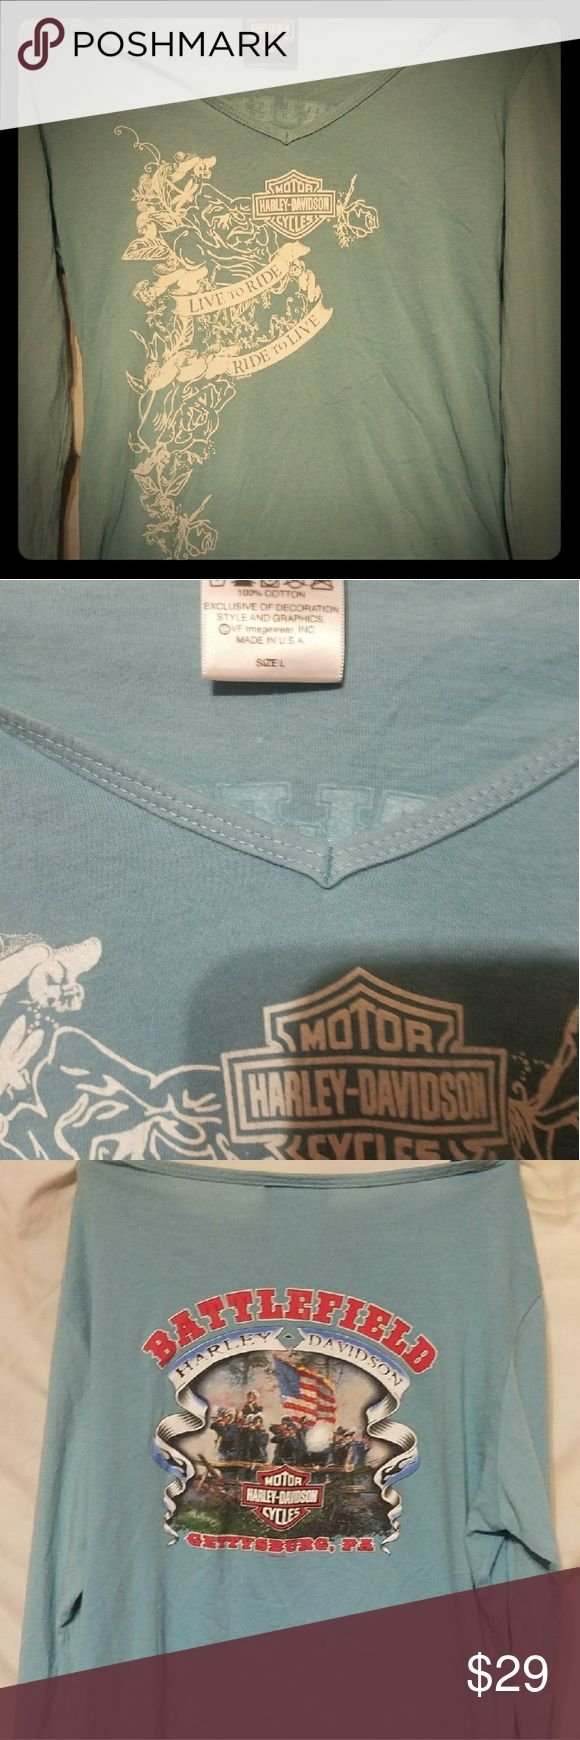 Harley davidson long sleeve shirt Great condition harley shirt Baby blue color Bought from pittsburgh harley dealer Harley-Davidson Tops Tees - Long Sleeve